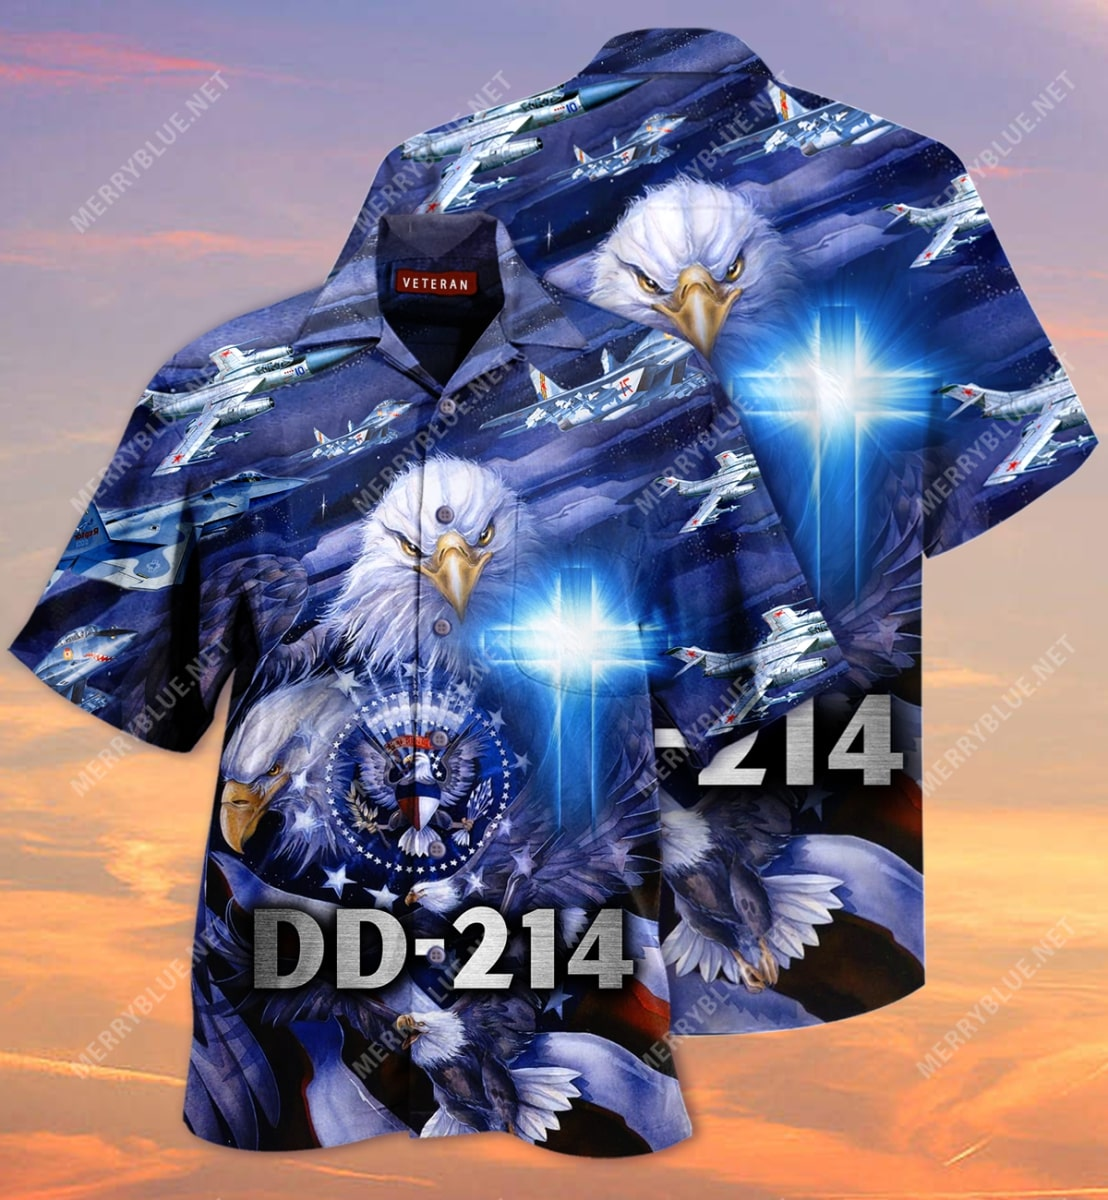 united state veteran on the sky all over printed hawaiian shirt 2